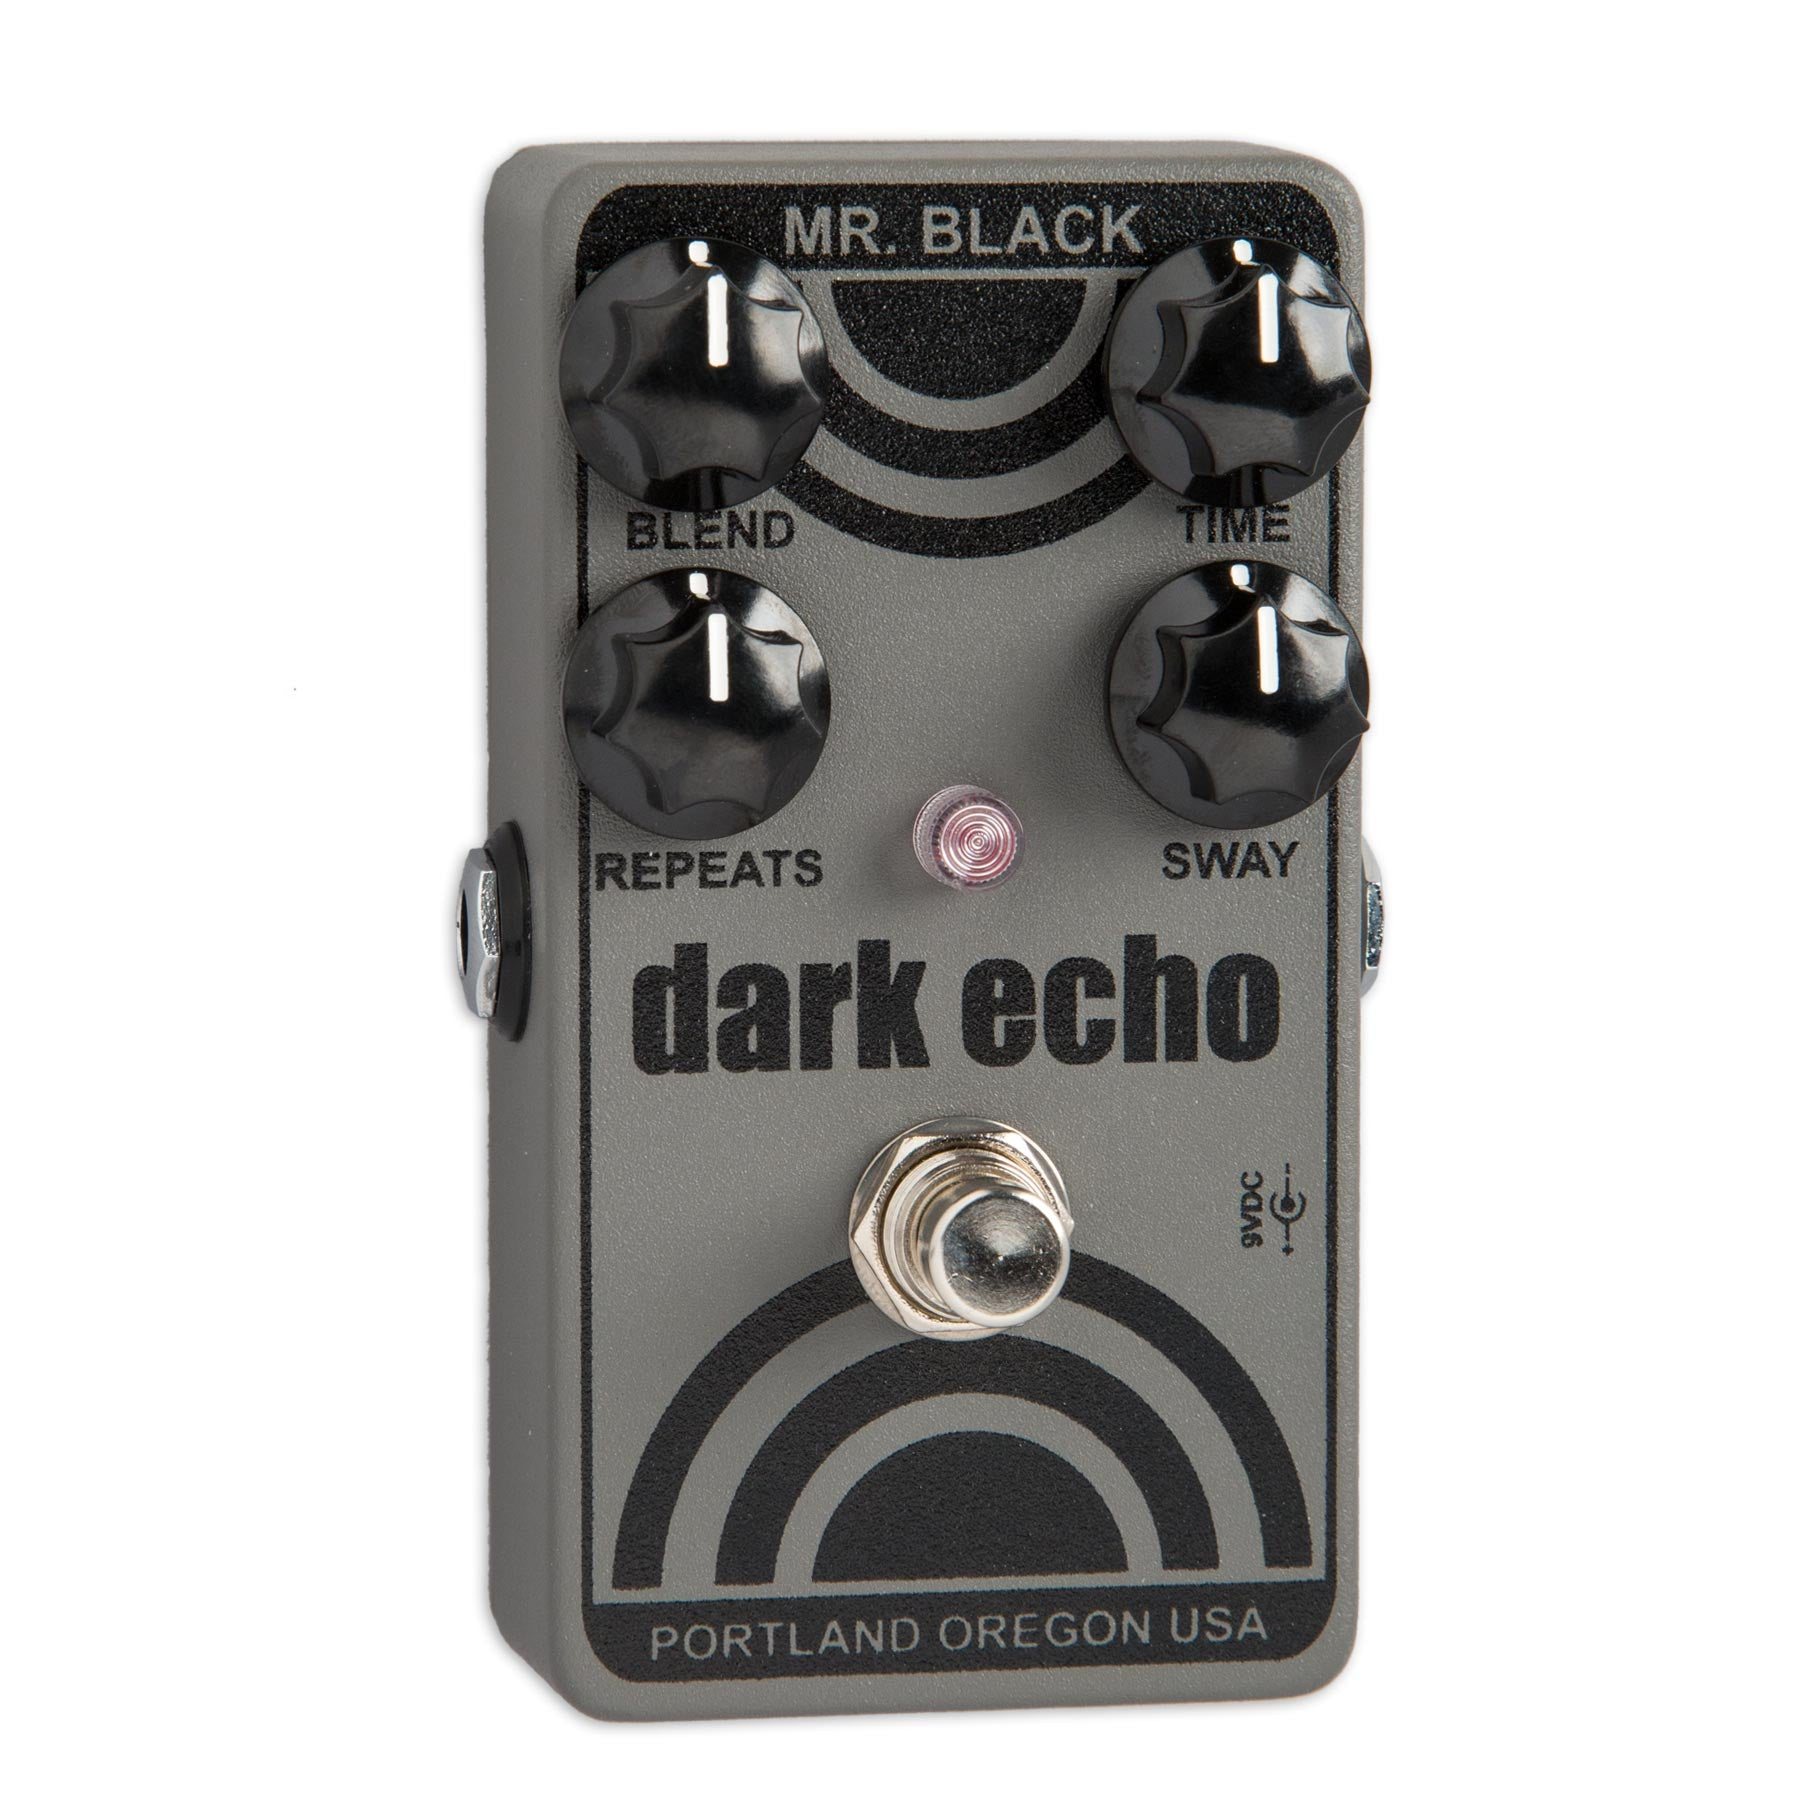 MR. BLACK DARK ECHO MODULATED ECHO GENERATOR